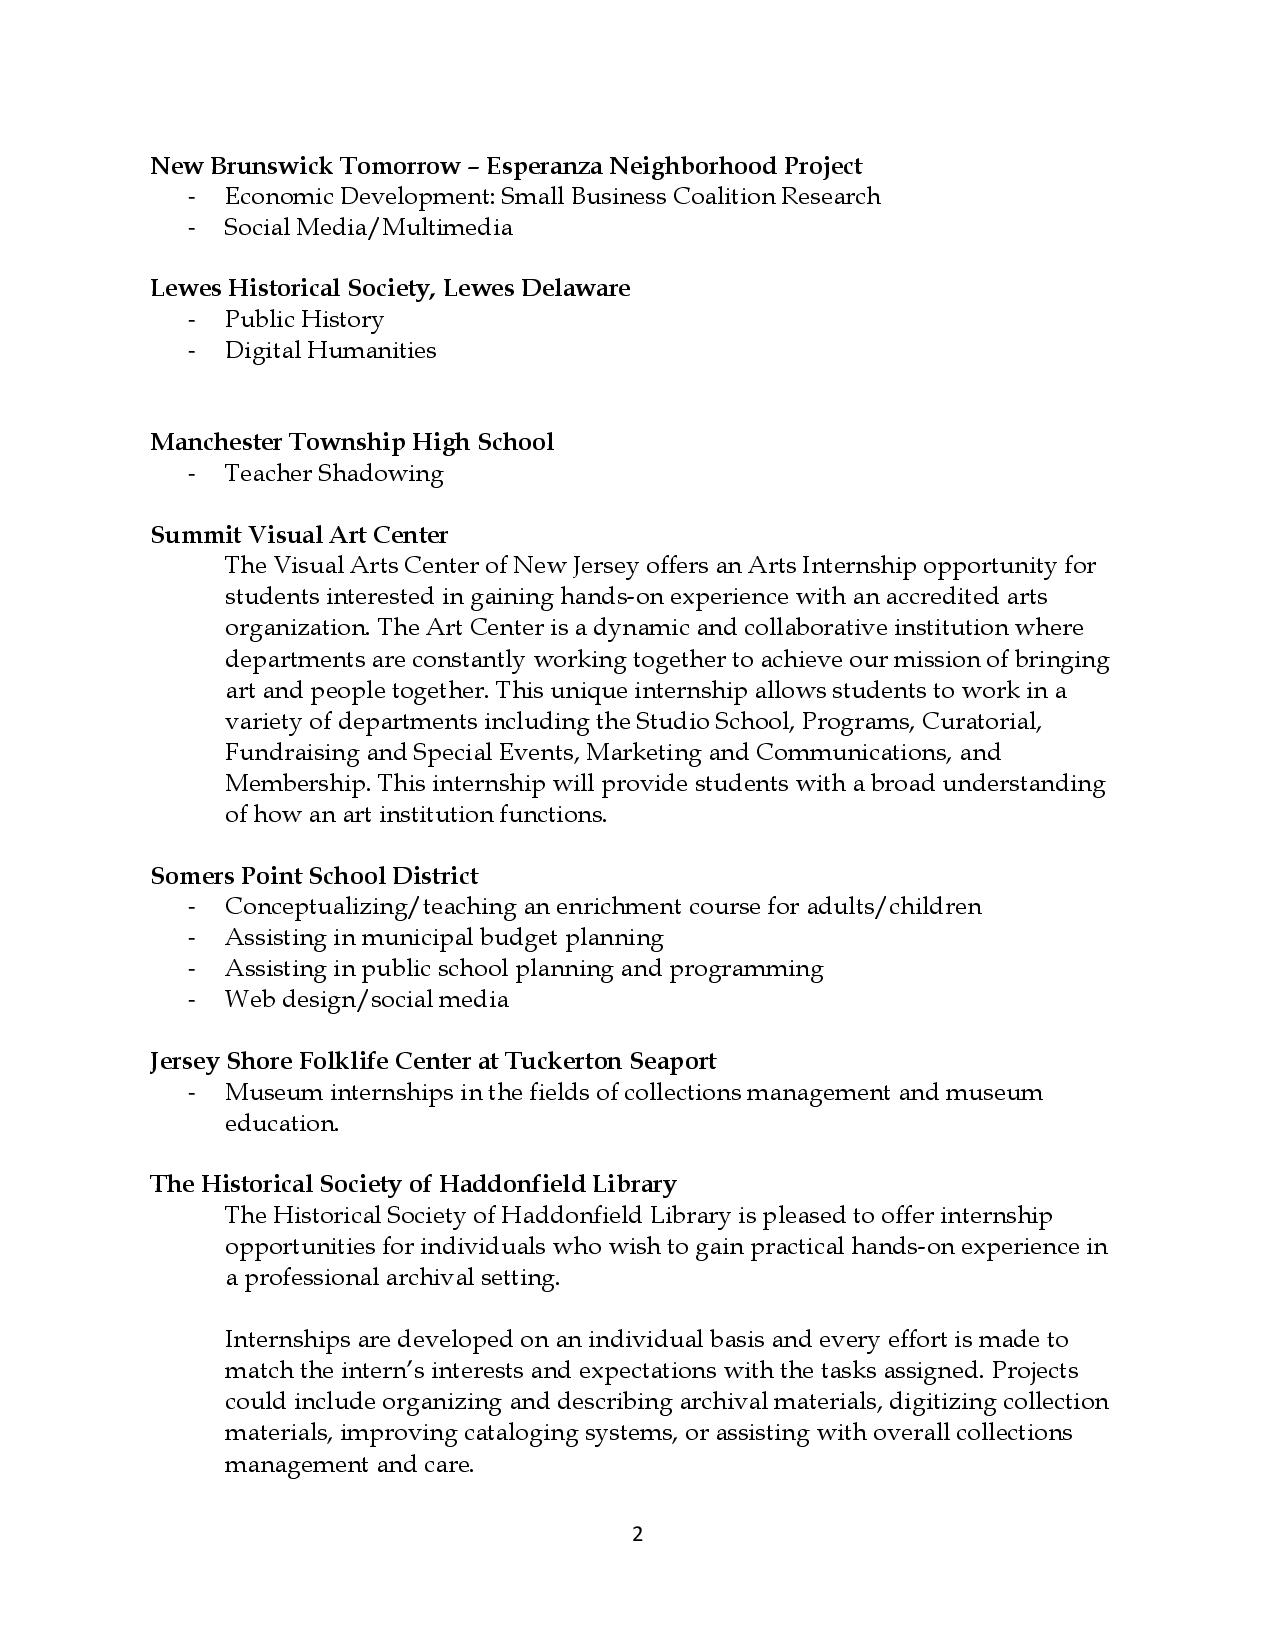 Internships Career Night Flyer 10.28.14-page-0022